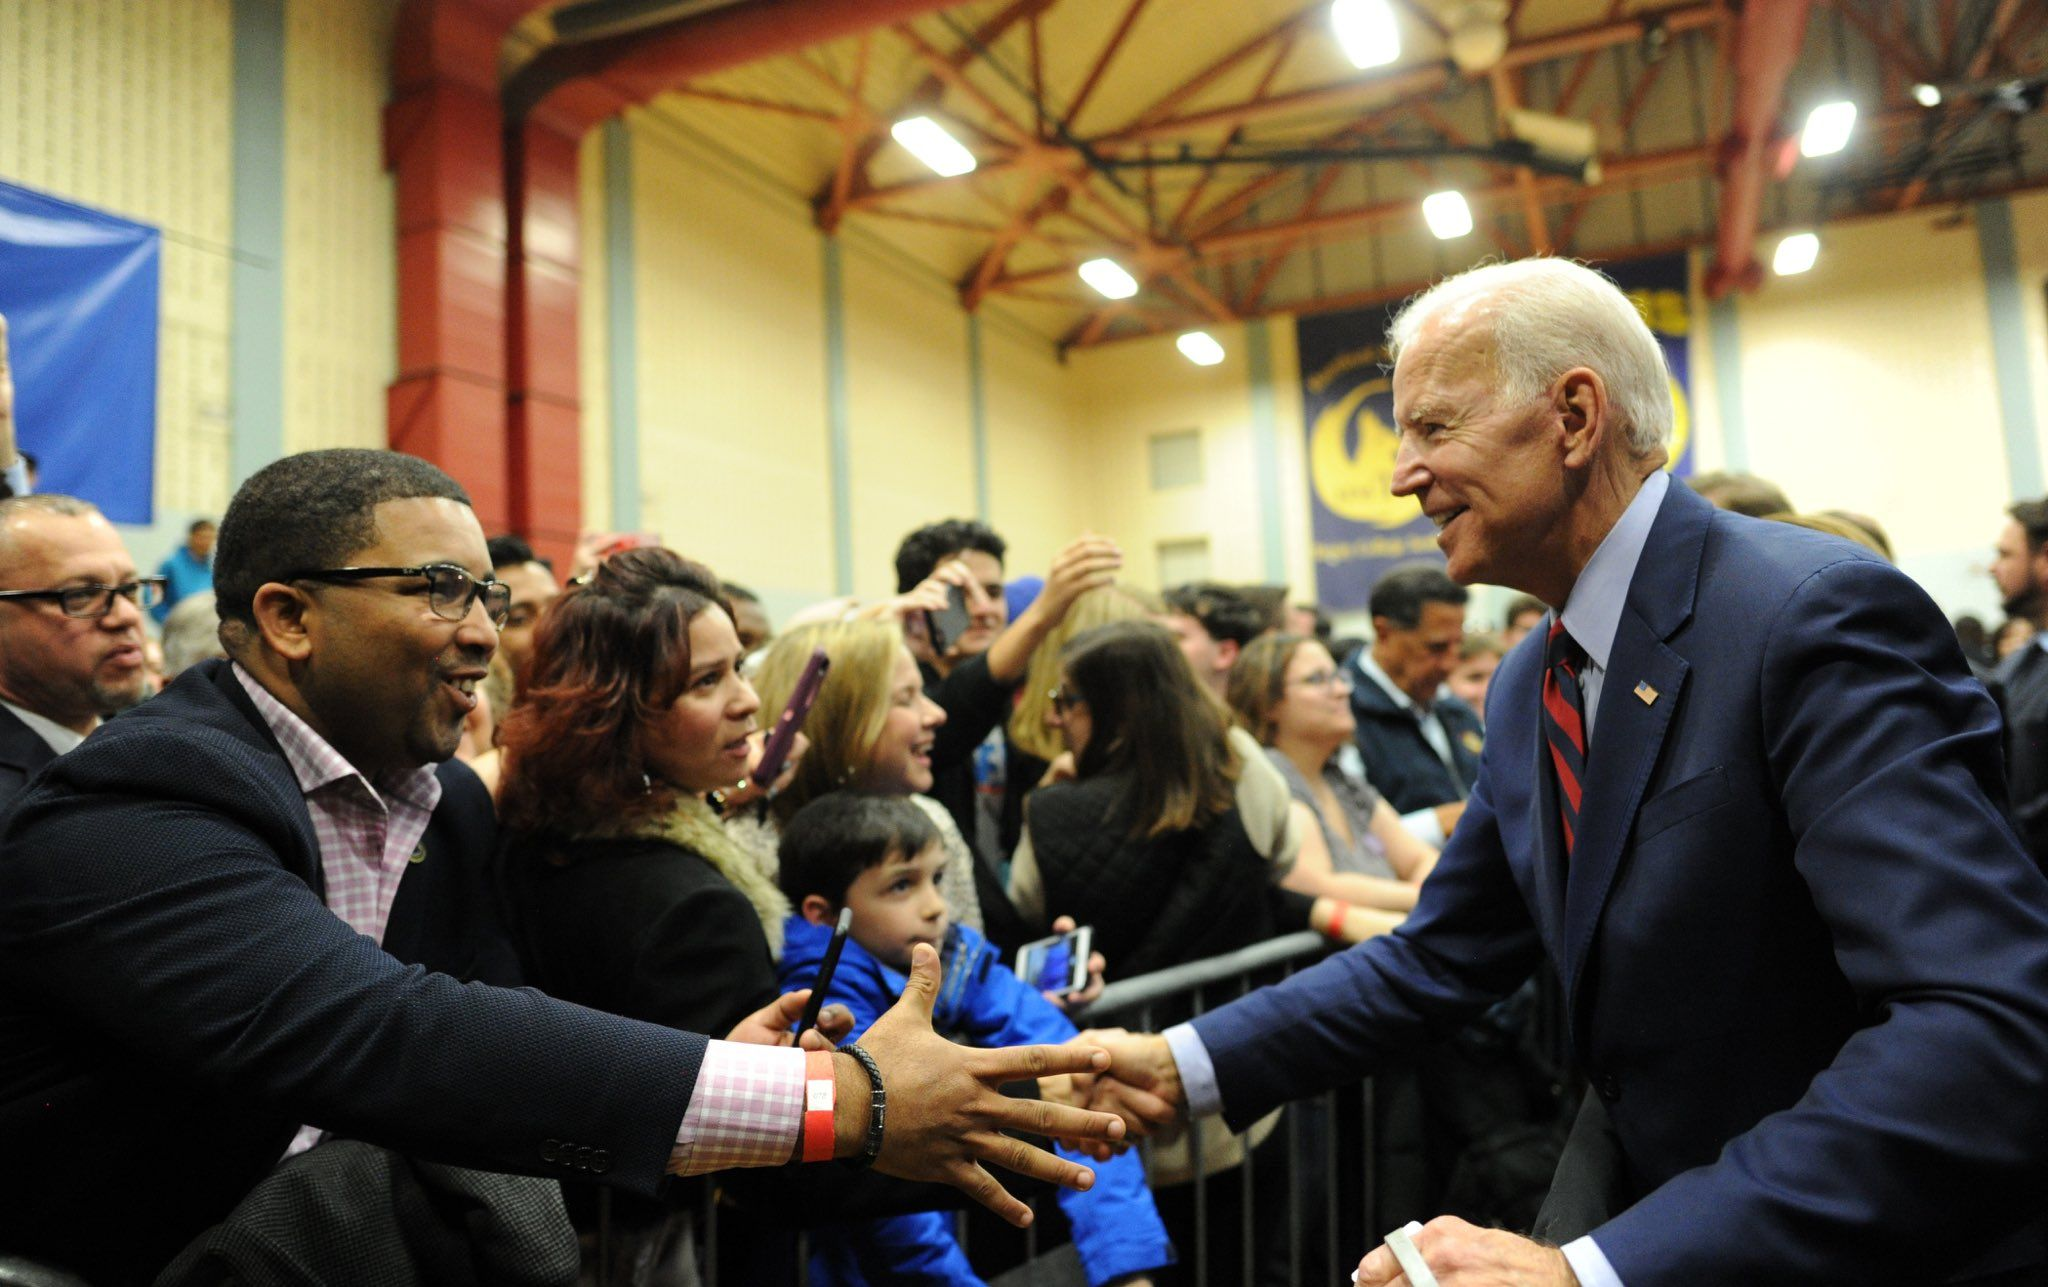 Joe Biden shaking hands with supporters